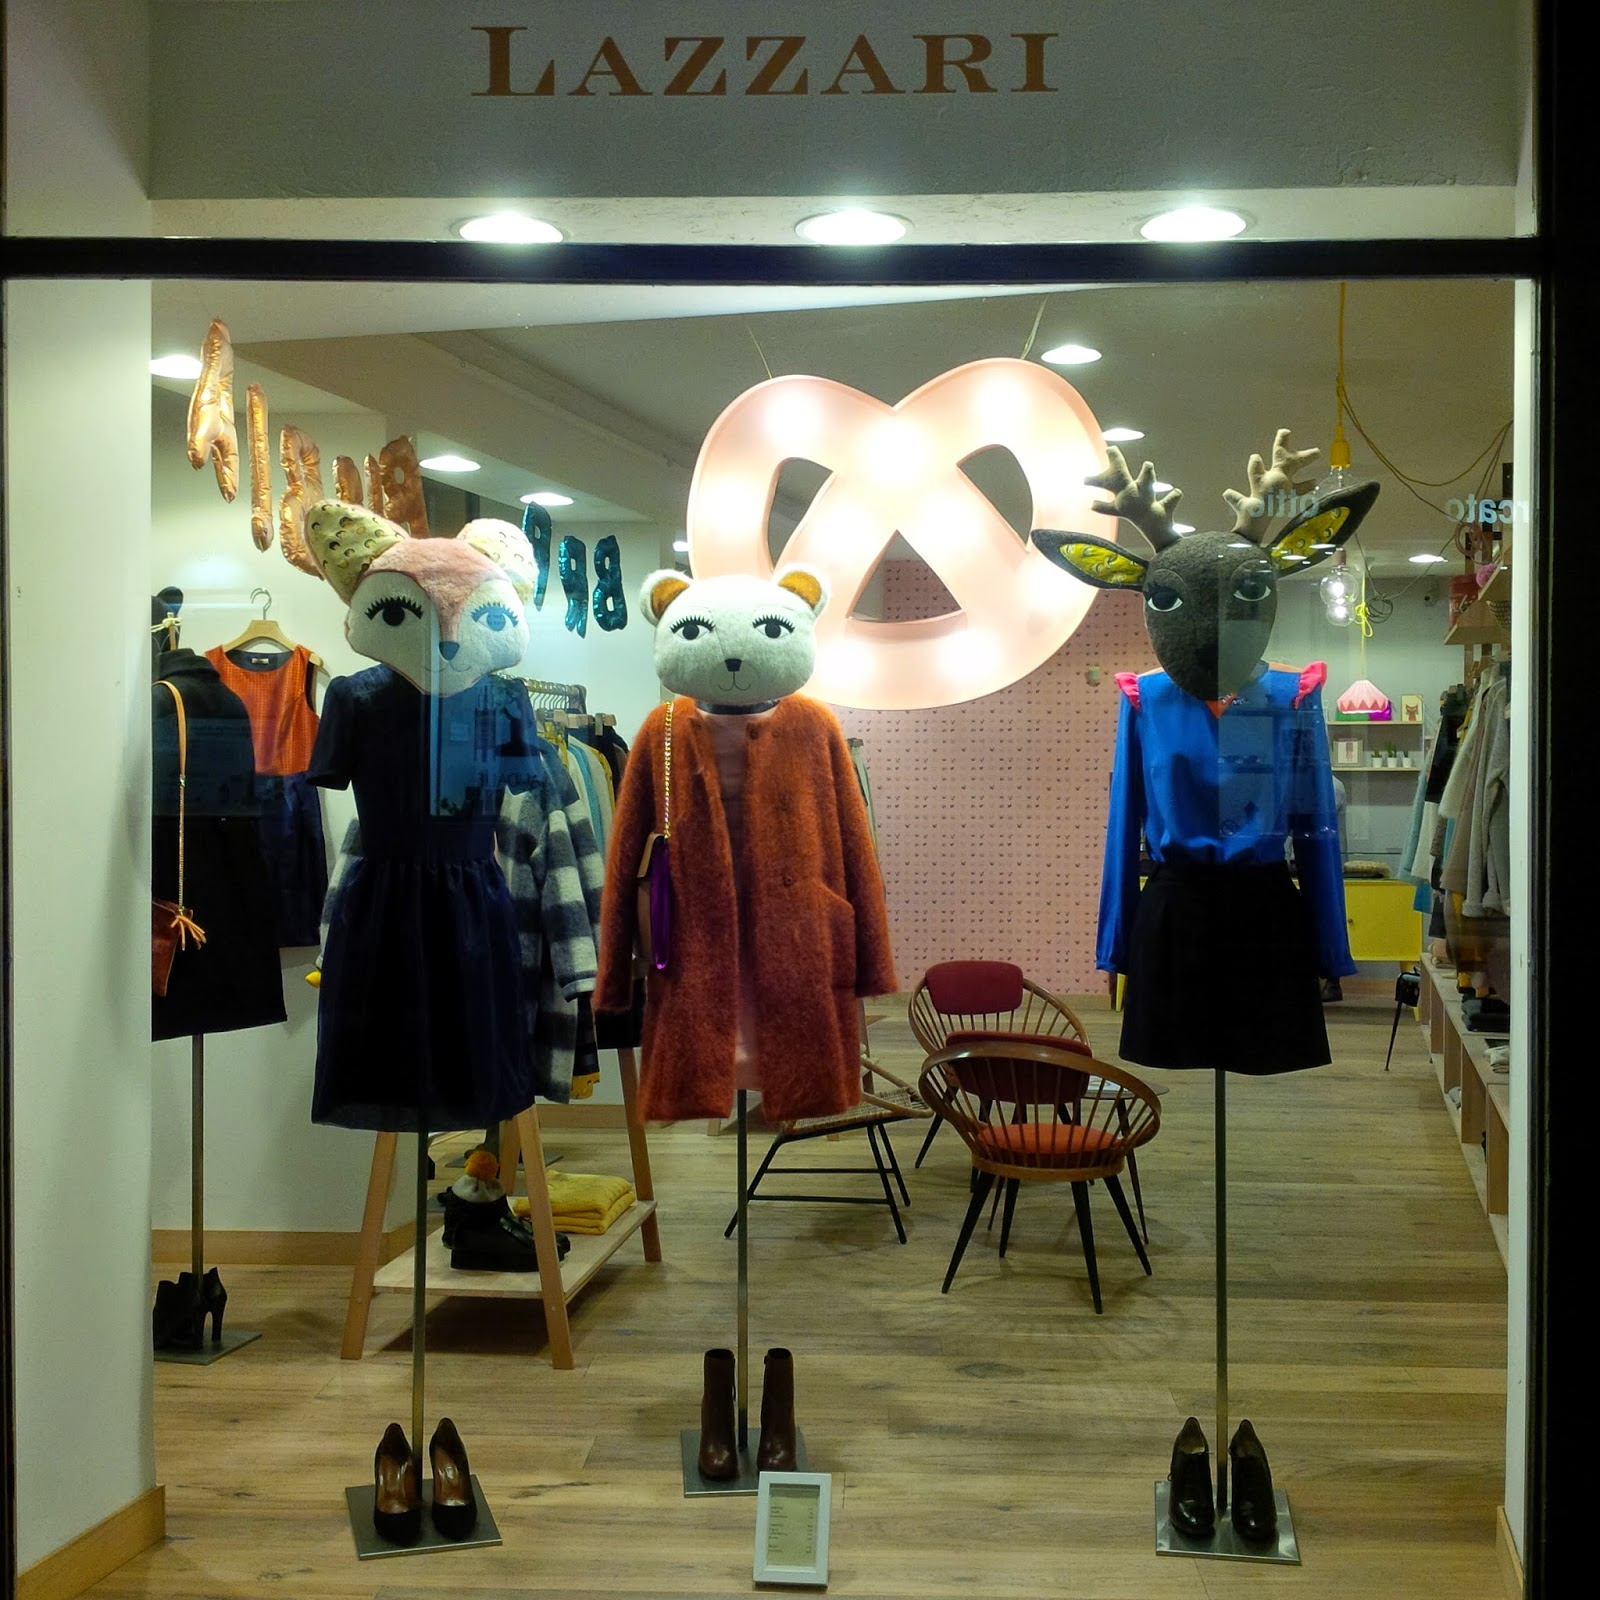 The window display of a posh fashion shop in Vicenza